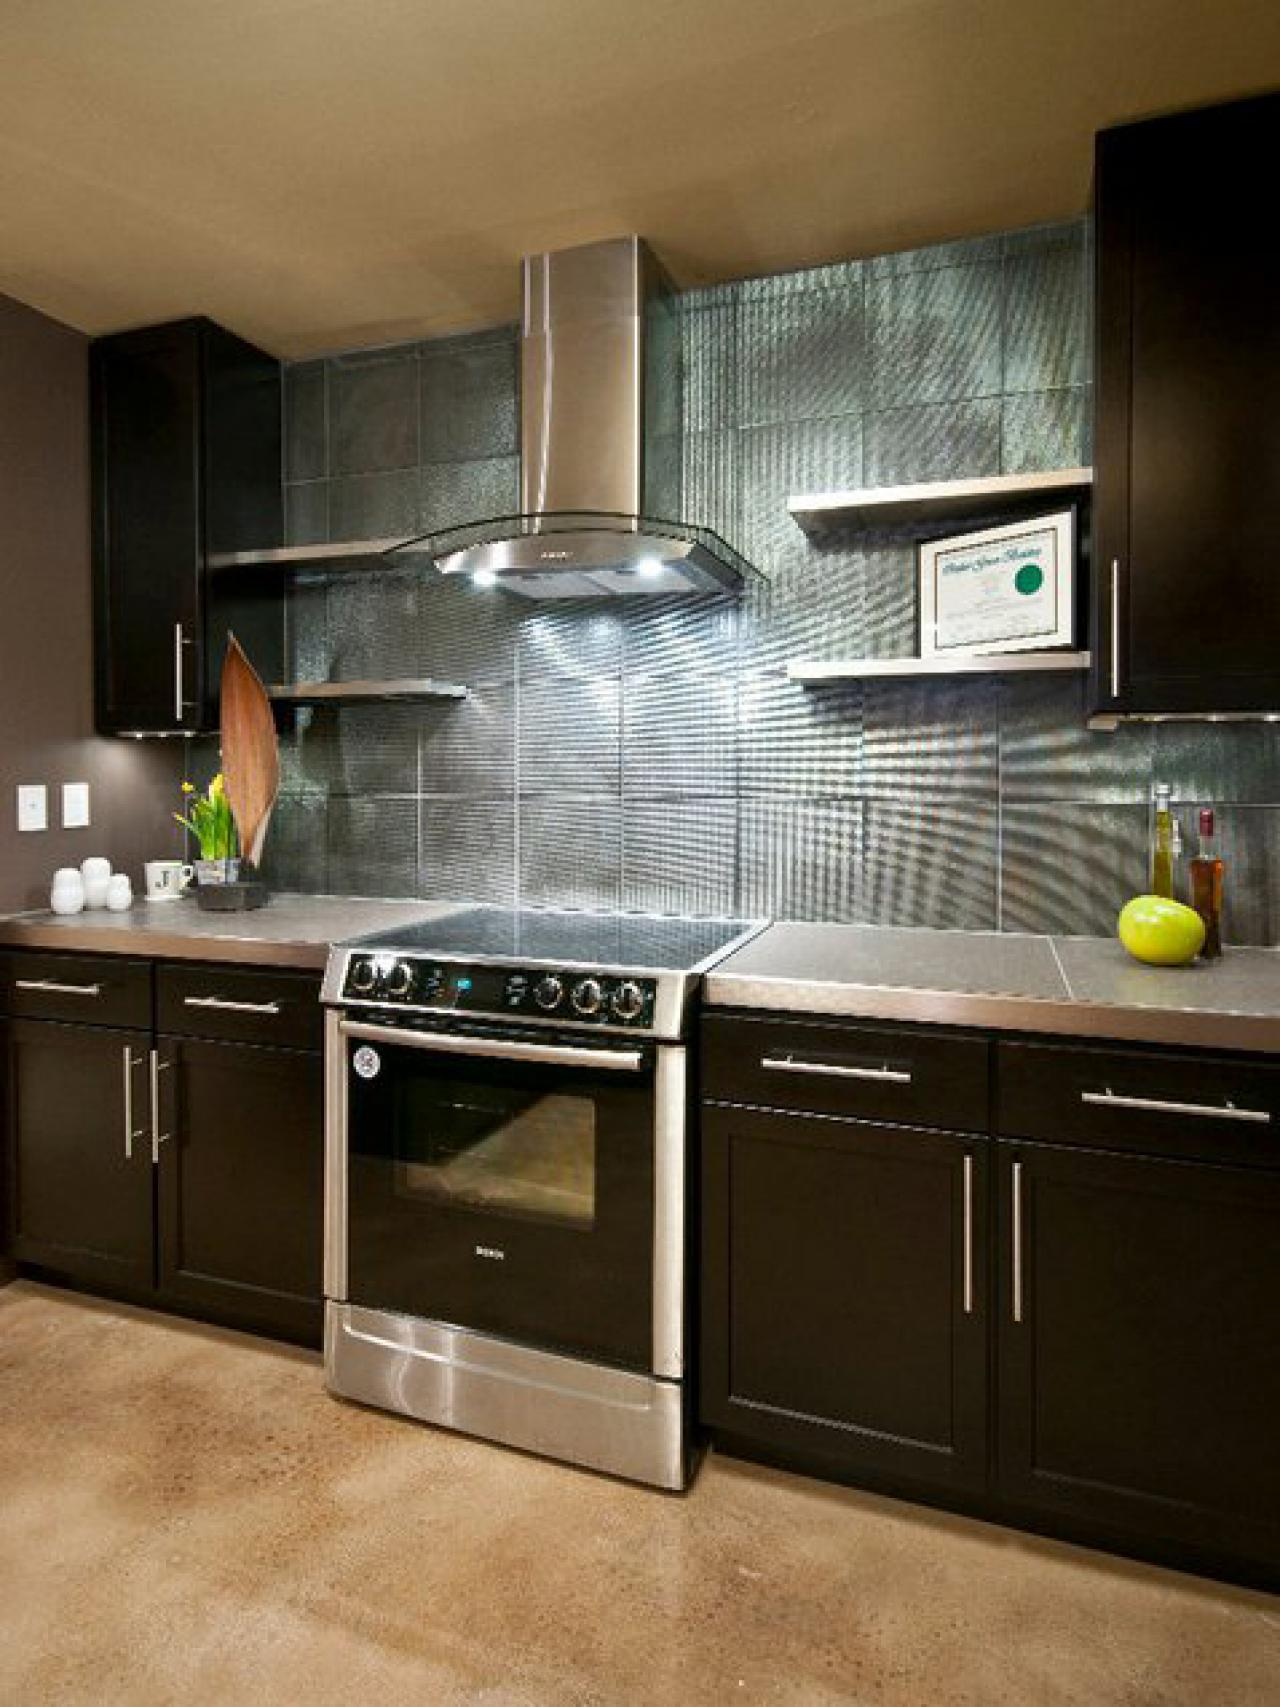 Modern Kitchen Backsplash do-it-yourself diy kitchen backsplash ideas + hgtv pictures | hgtv